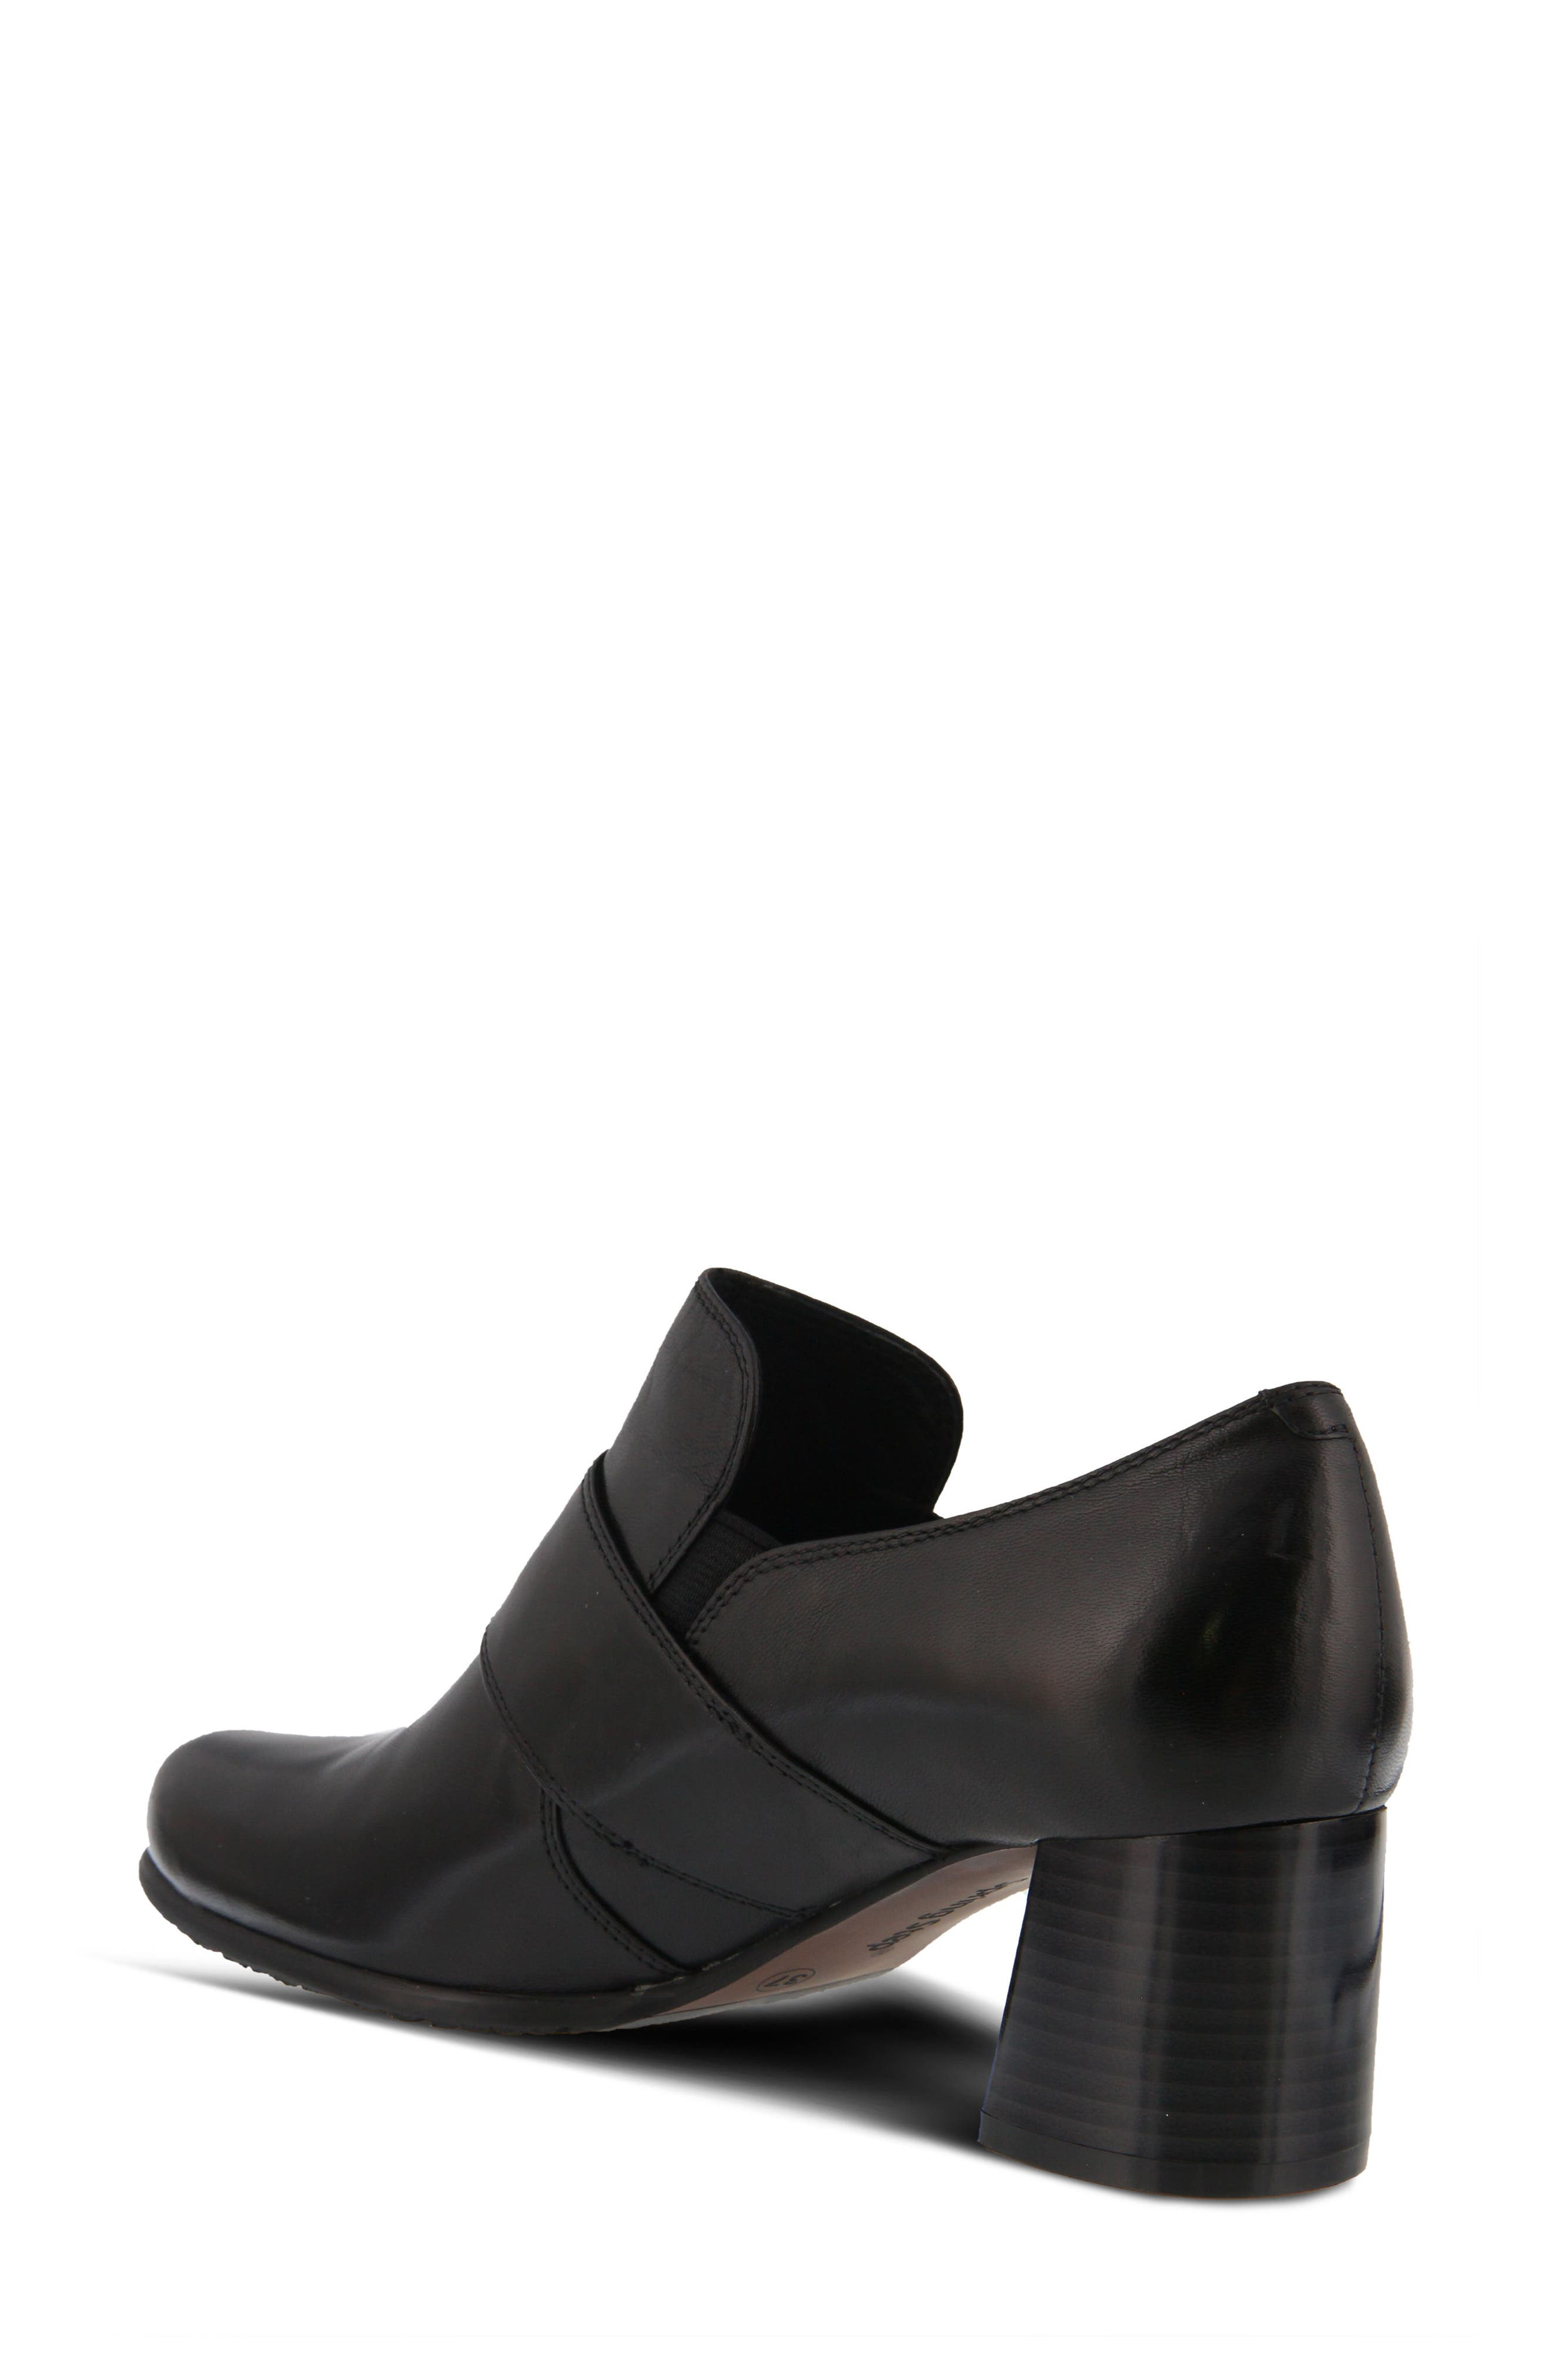 Dayana Bootie,                             Alternate thumbnail 2, color,                             BLACK LEATHER